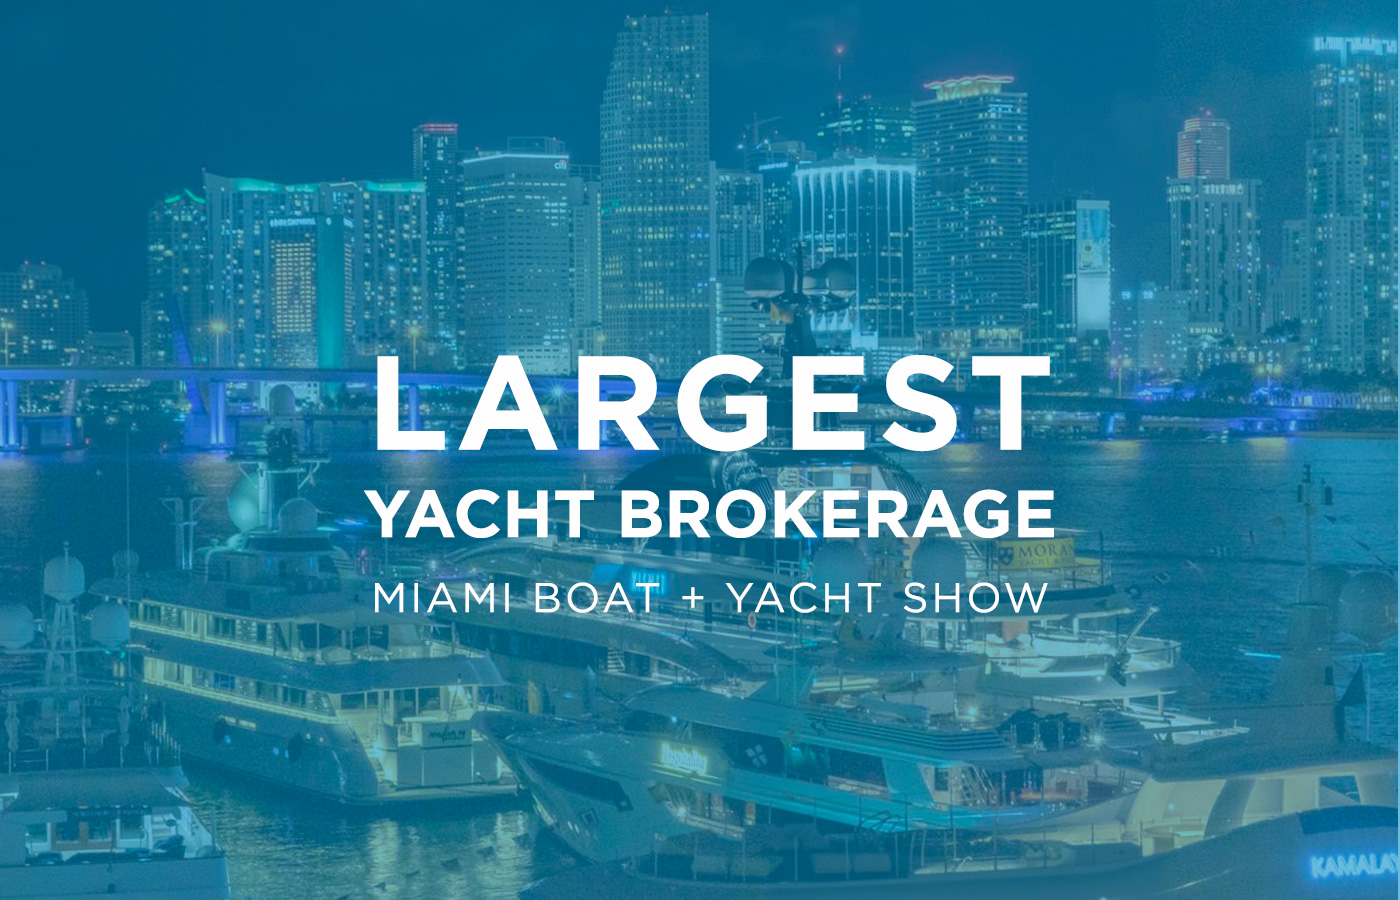 Denison As Largest Dealer At Miami Boat + Yacht Show